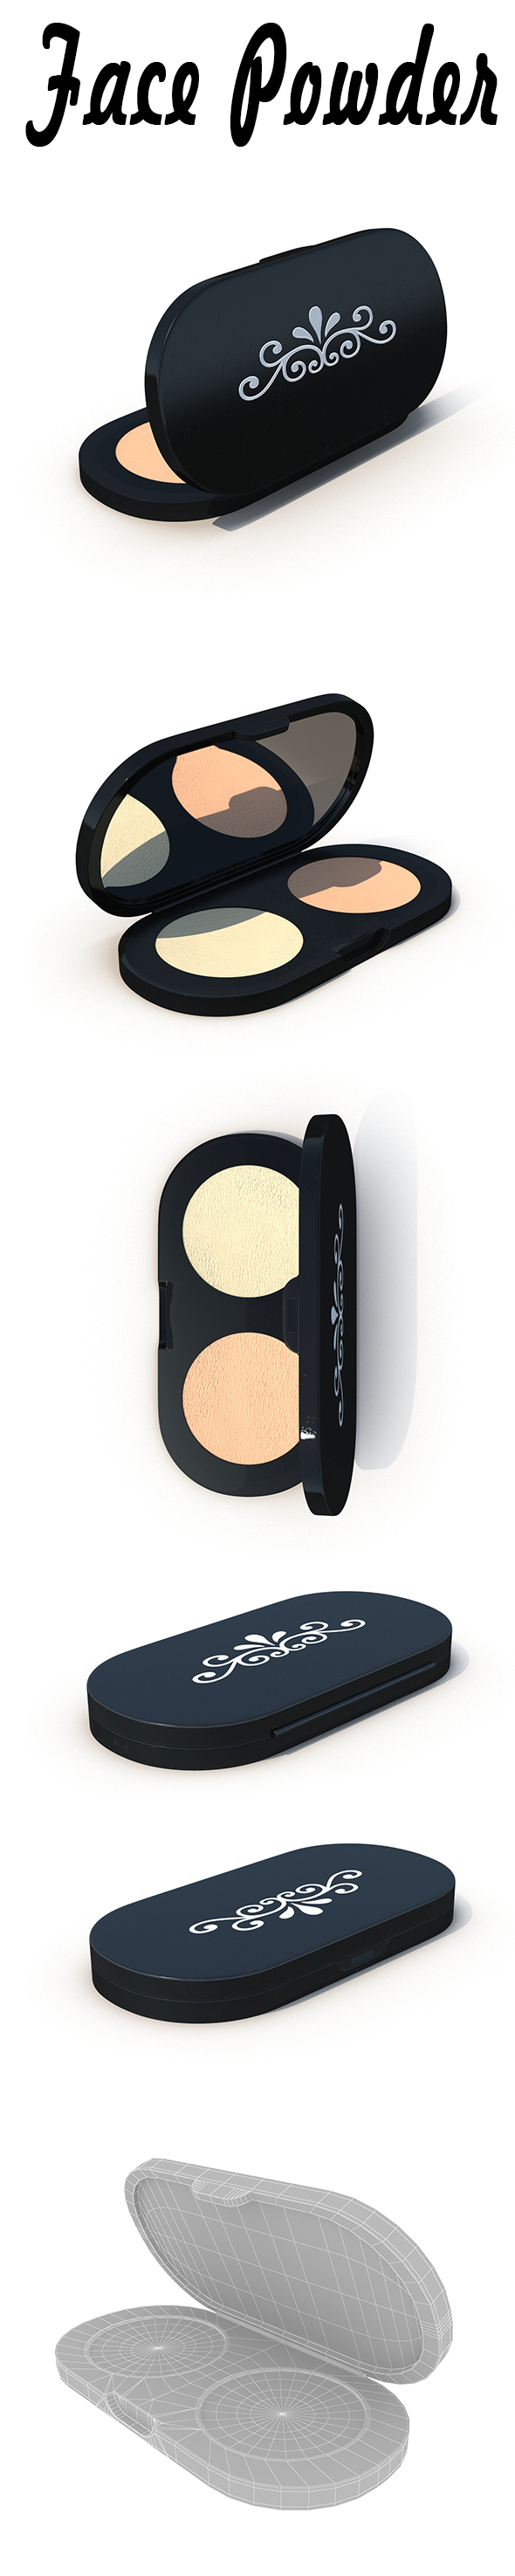 Face Powder - 3DOcean Item for Sale